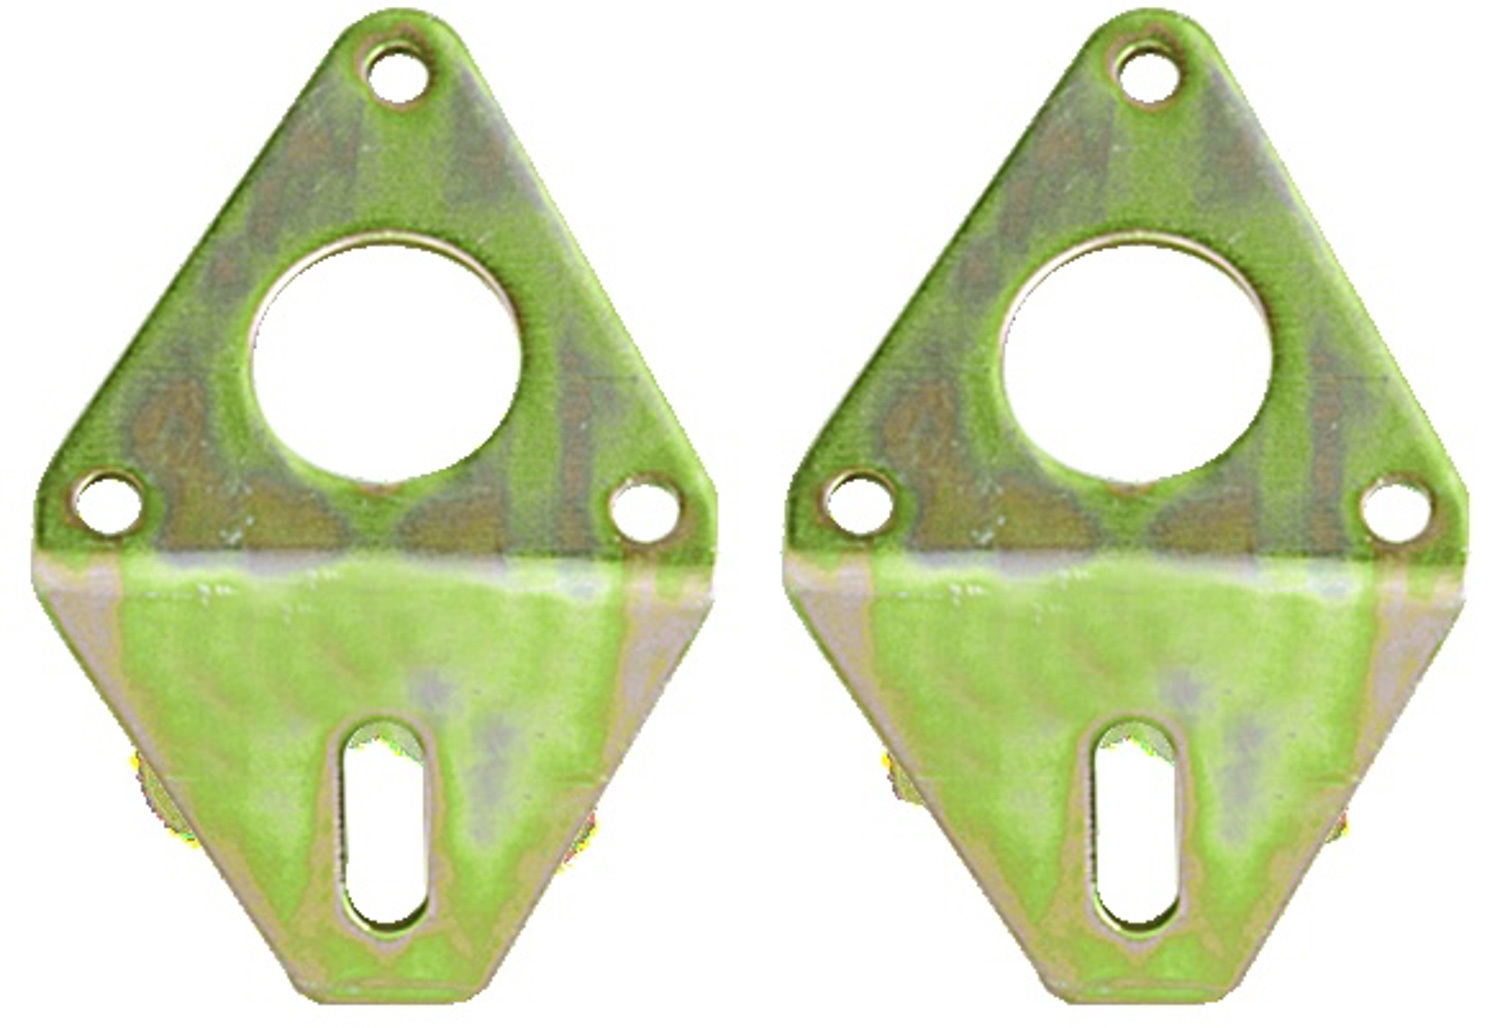 AFCO Racing Products 80651 Motor Mount, Bolt-On, Steel, Cadmium Plated, Front, Chevy V8, Pair